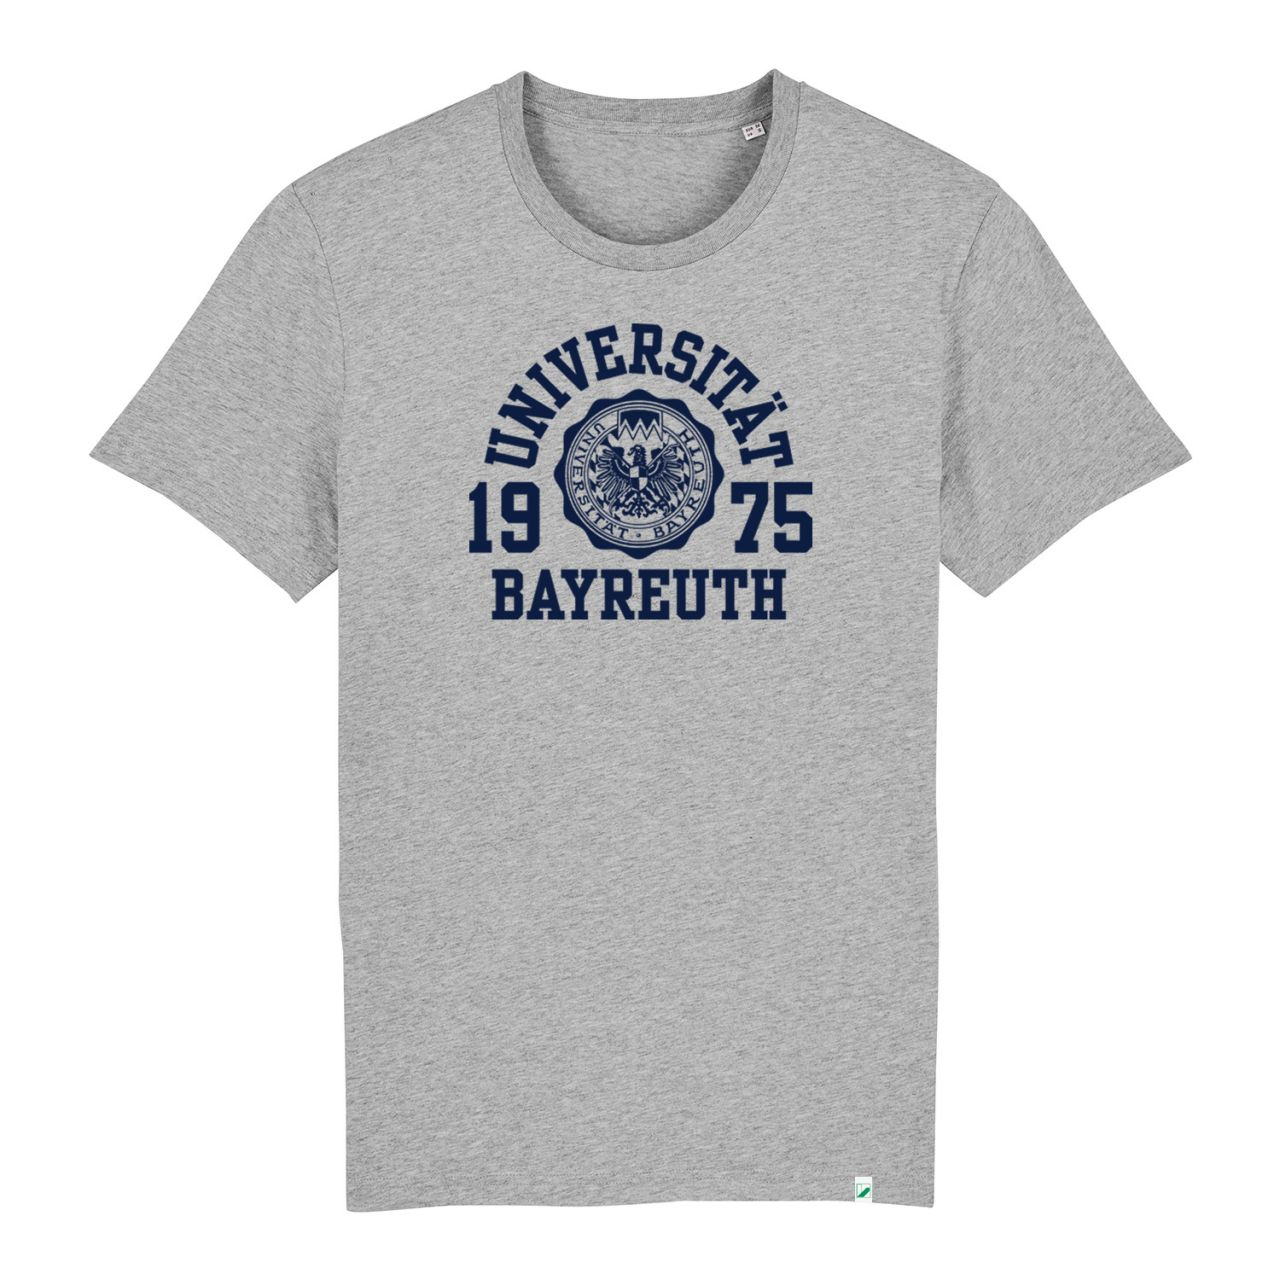 Unisex Organic T-Shirt, heather grey, marshall.navy